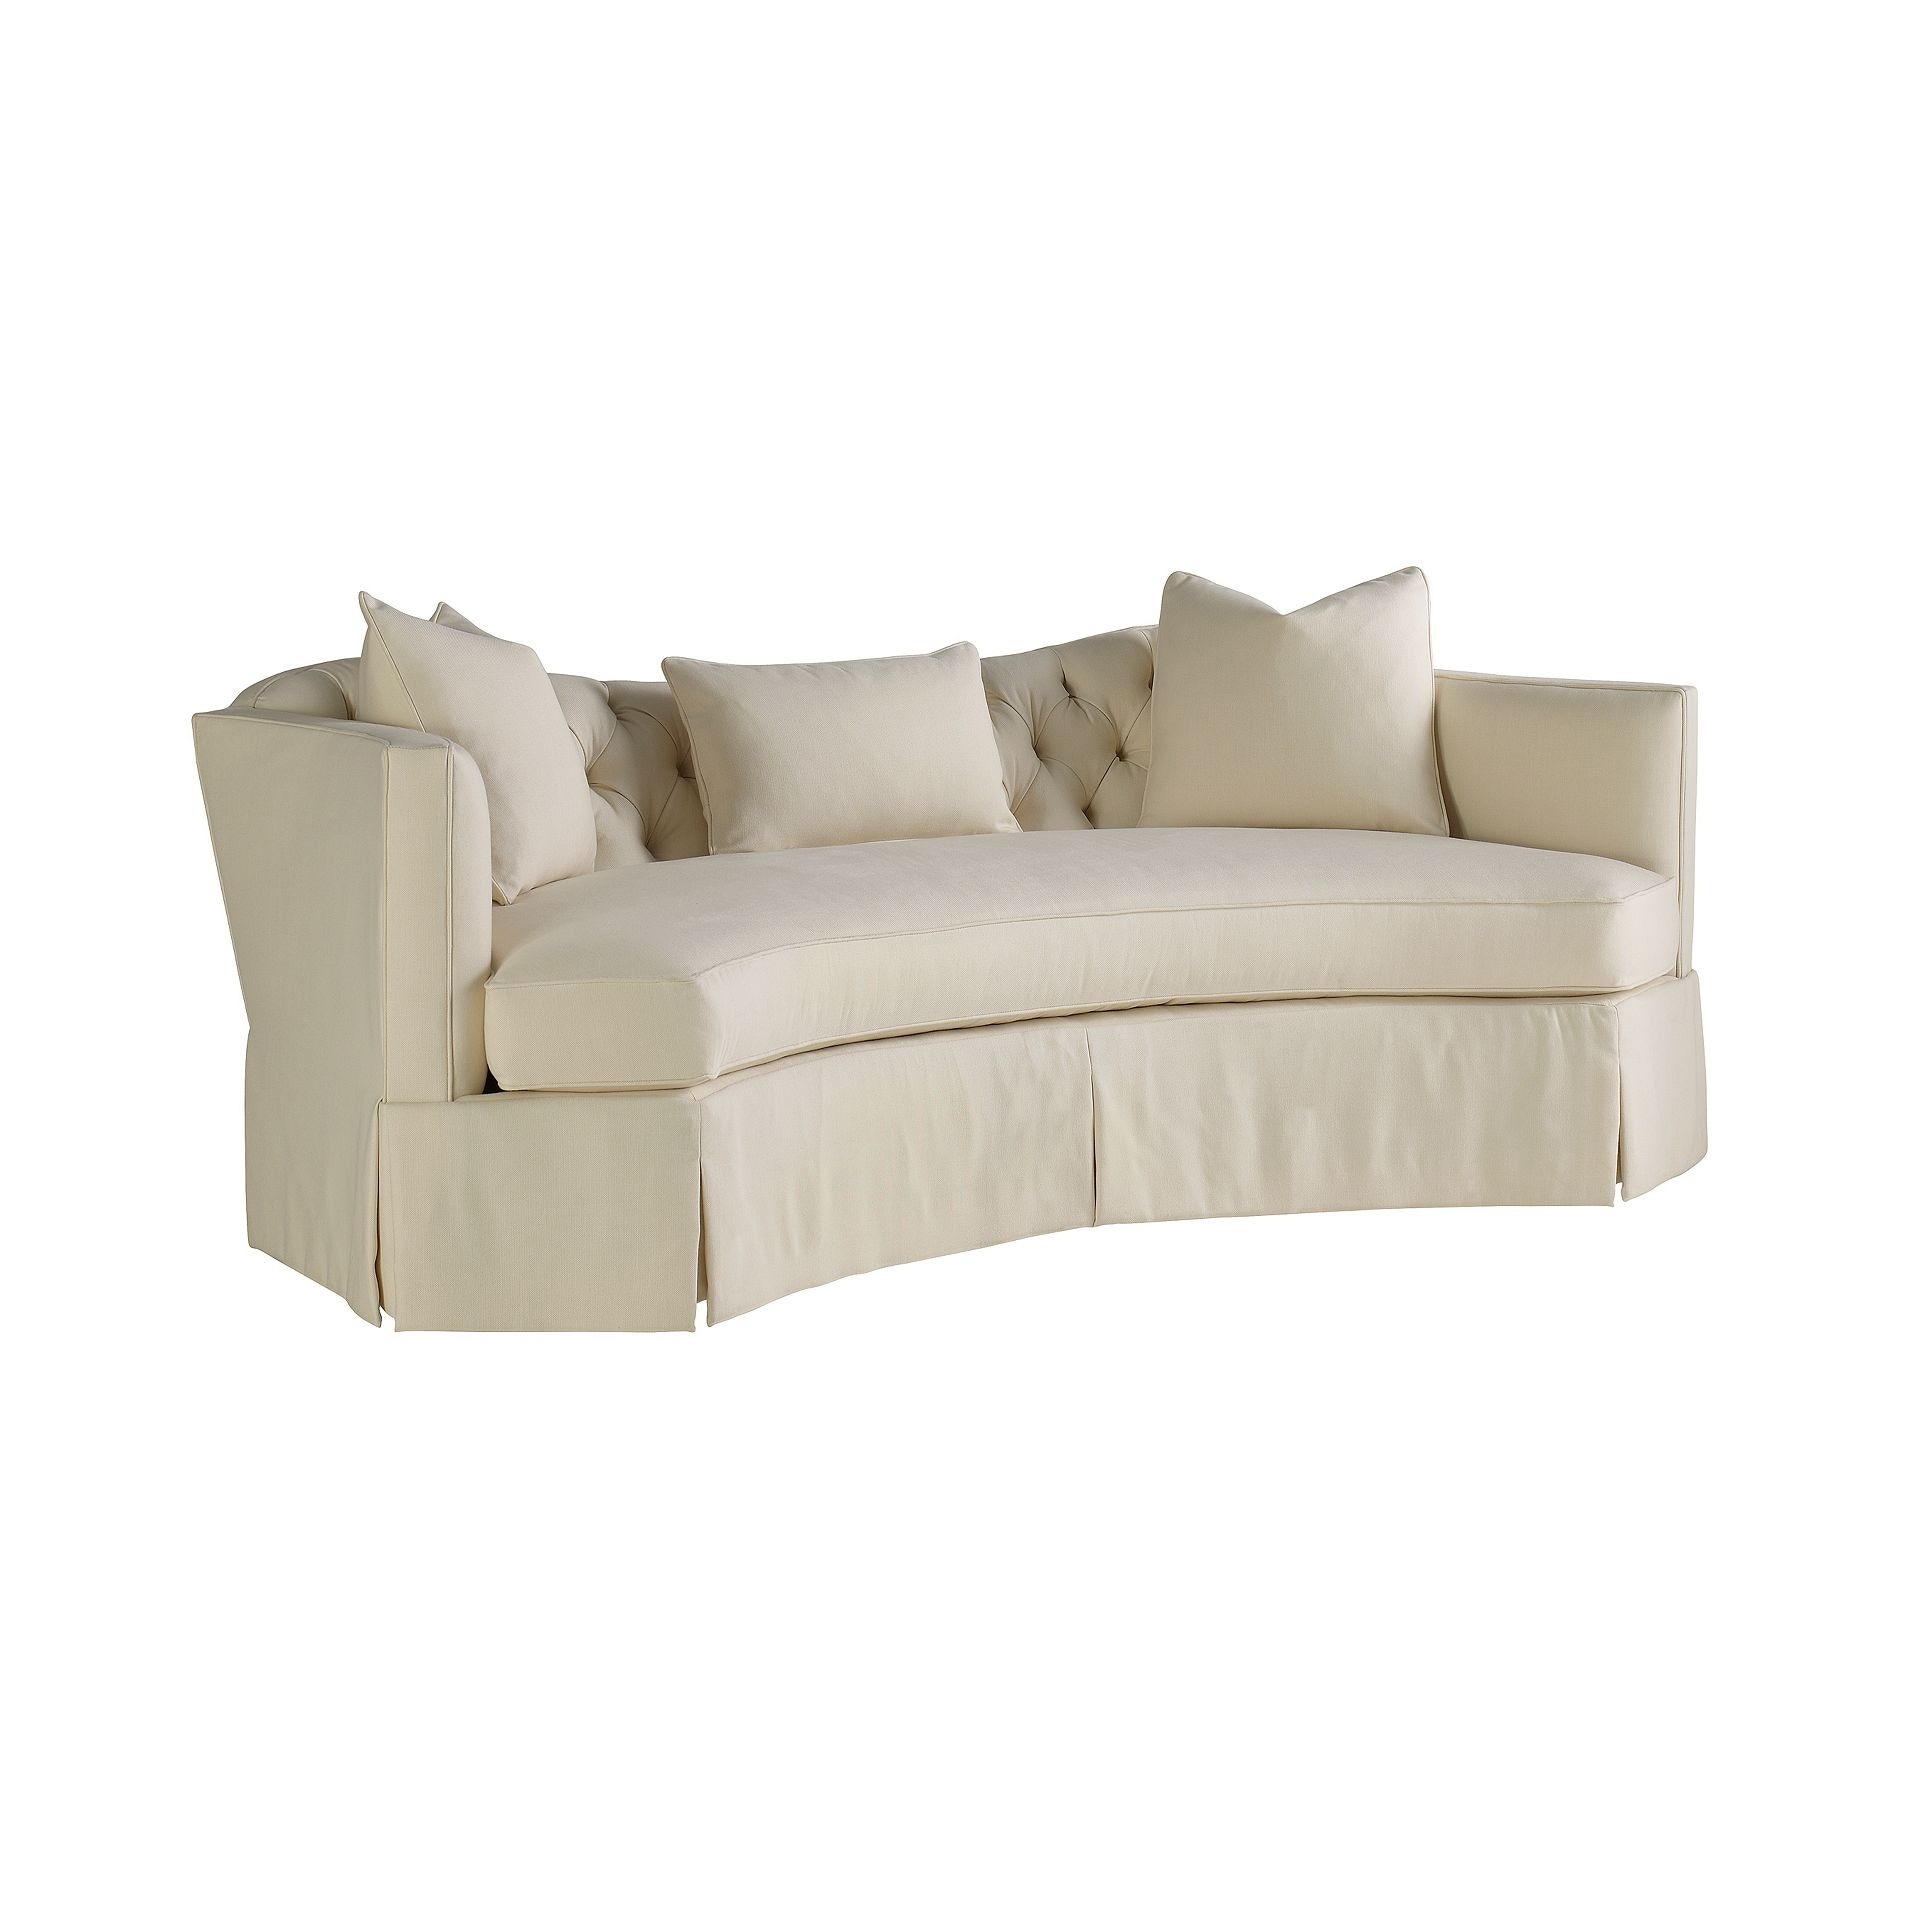 Henredon Furniture Celerie Kemble For Henredon Serpentine Short Sofa H1301 B